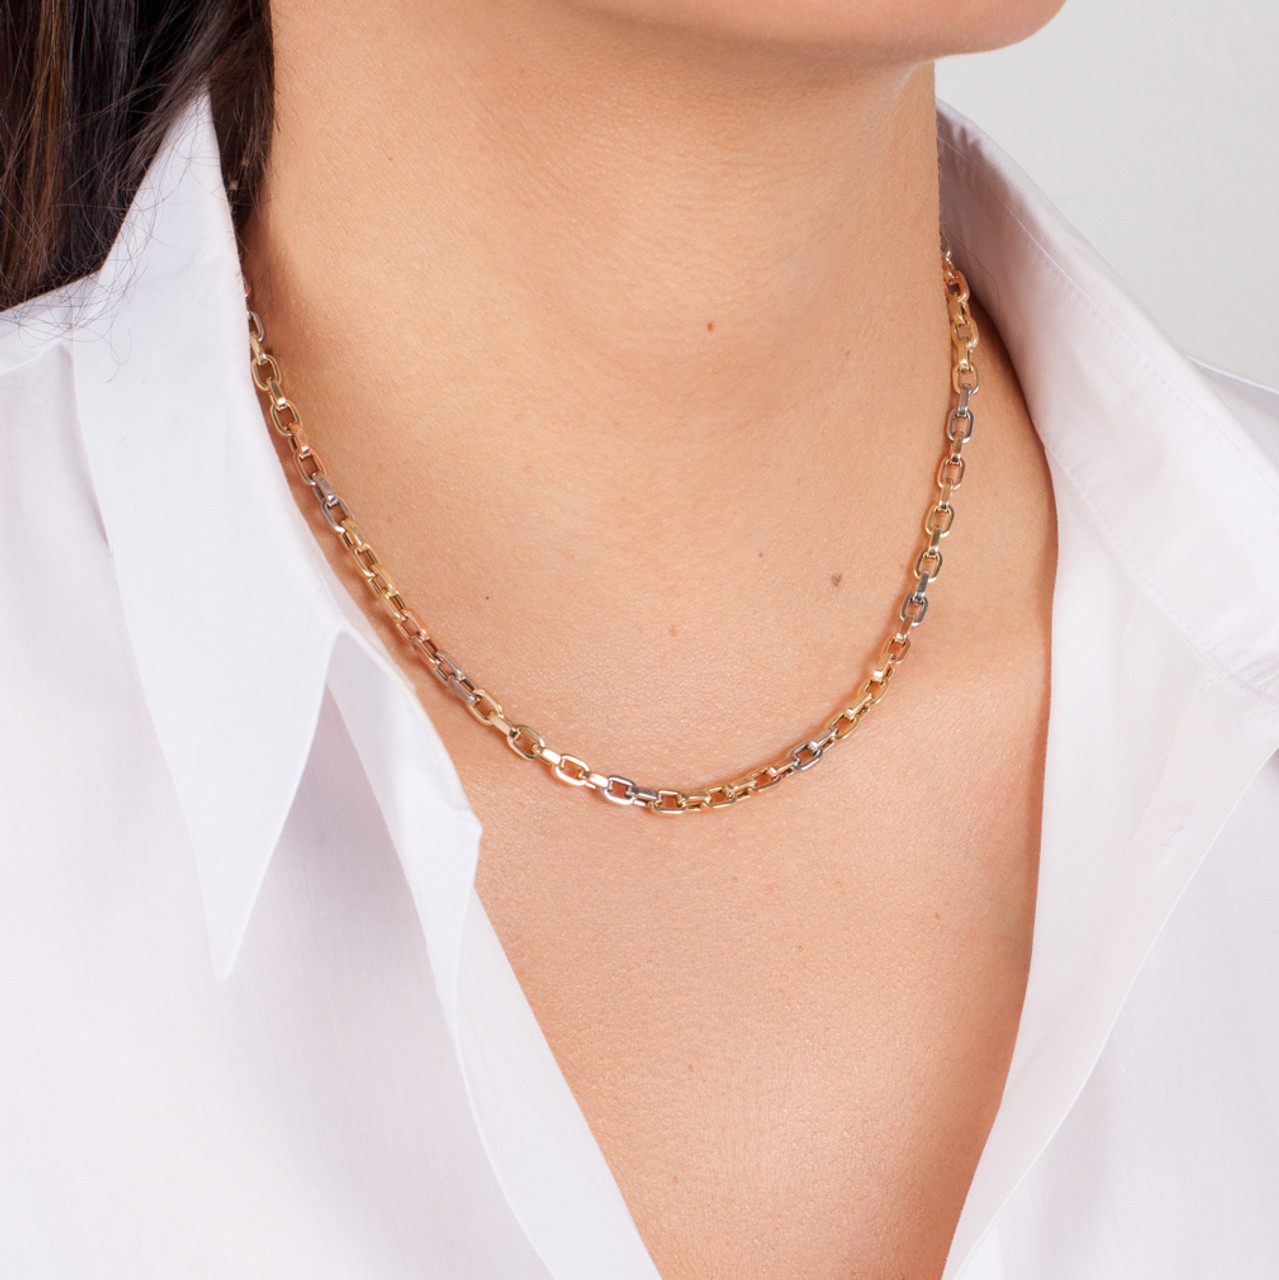 14k Gold Multi Tone Oval Link Chain Necklace